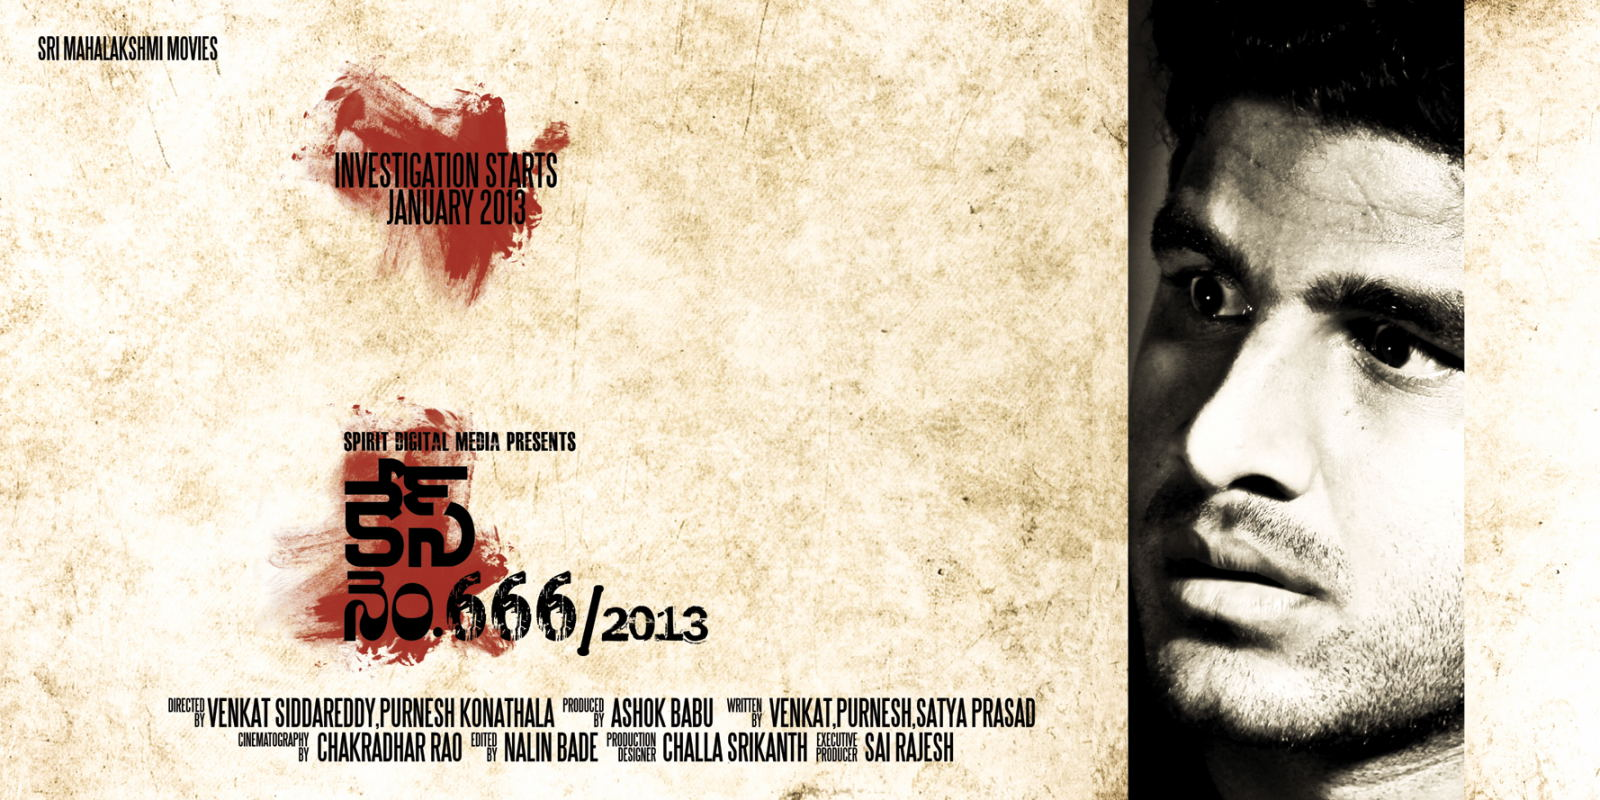 Bollywood Upcoming New Hbo Movies In January 2013